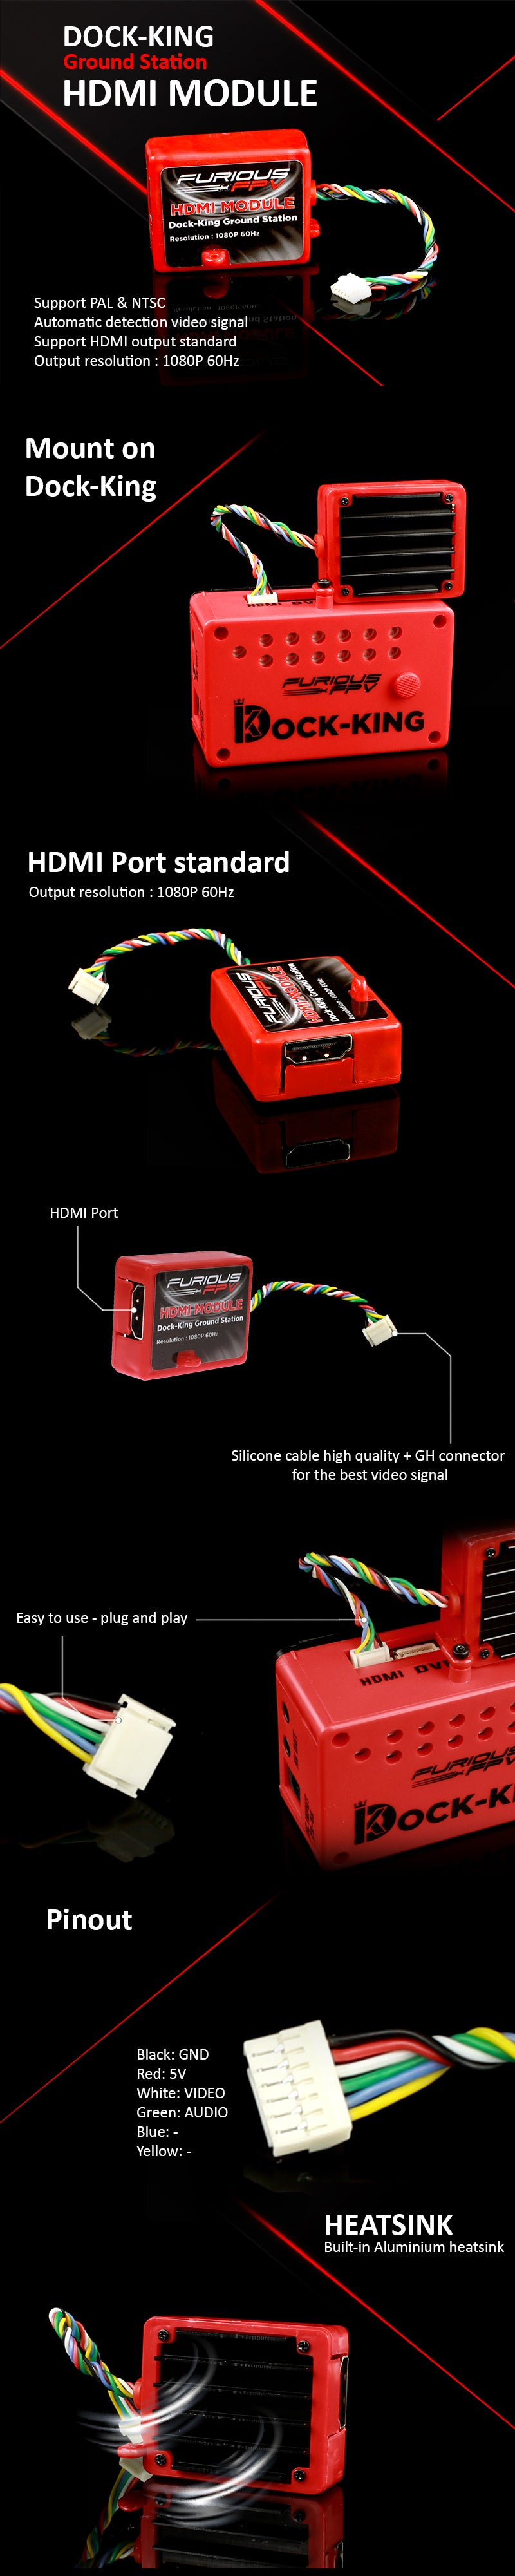 Furious FPV HDMI Module for Dock King